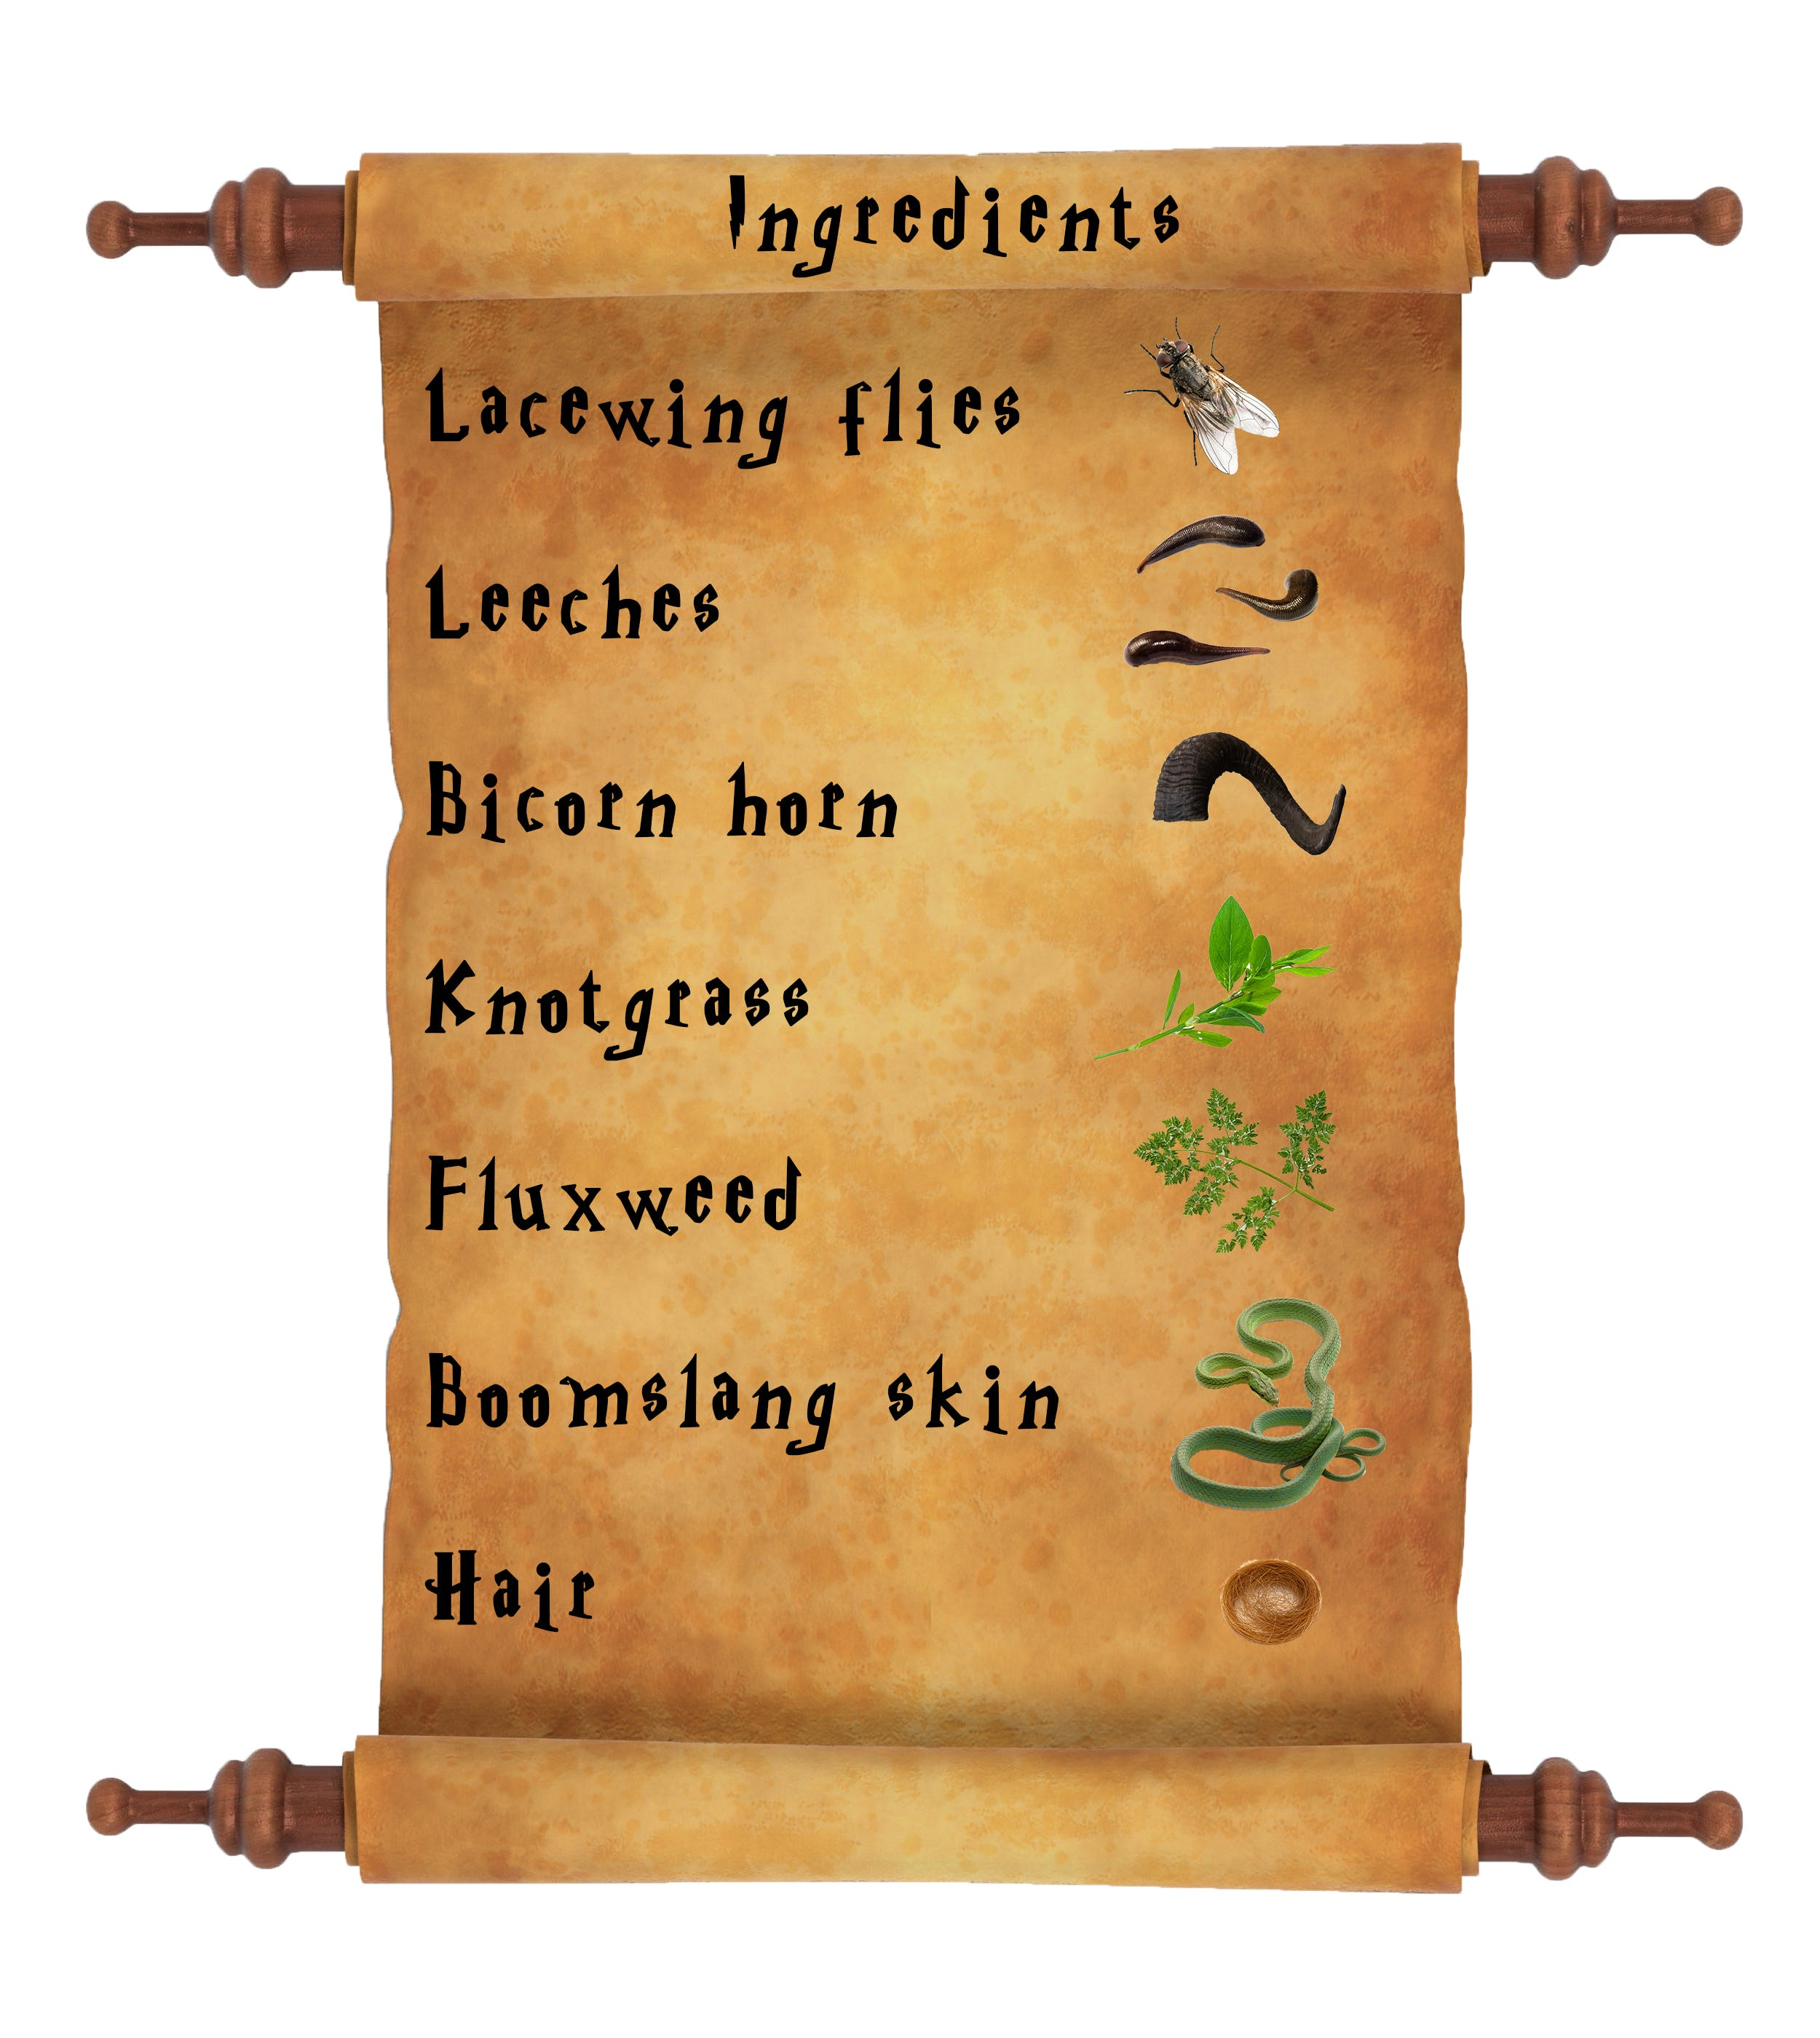 Harry Potter potions list - Polyjuice ingredients